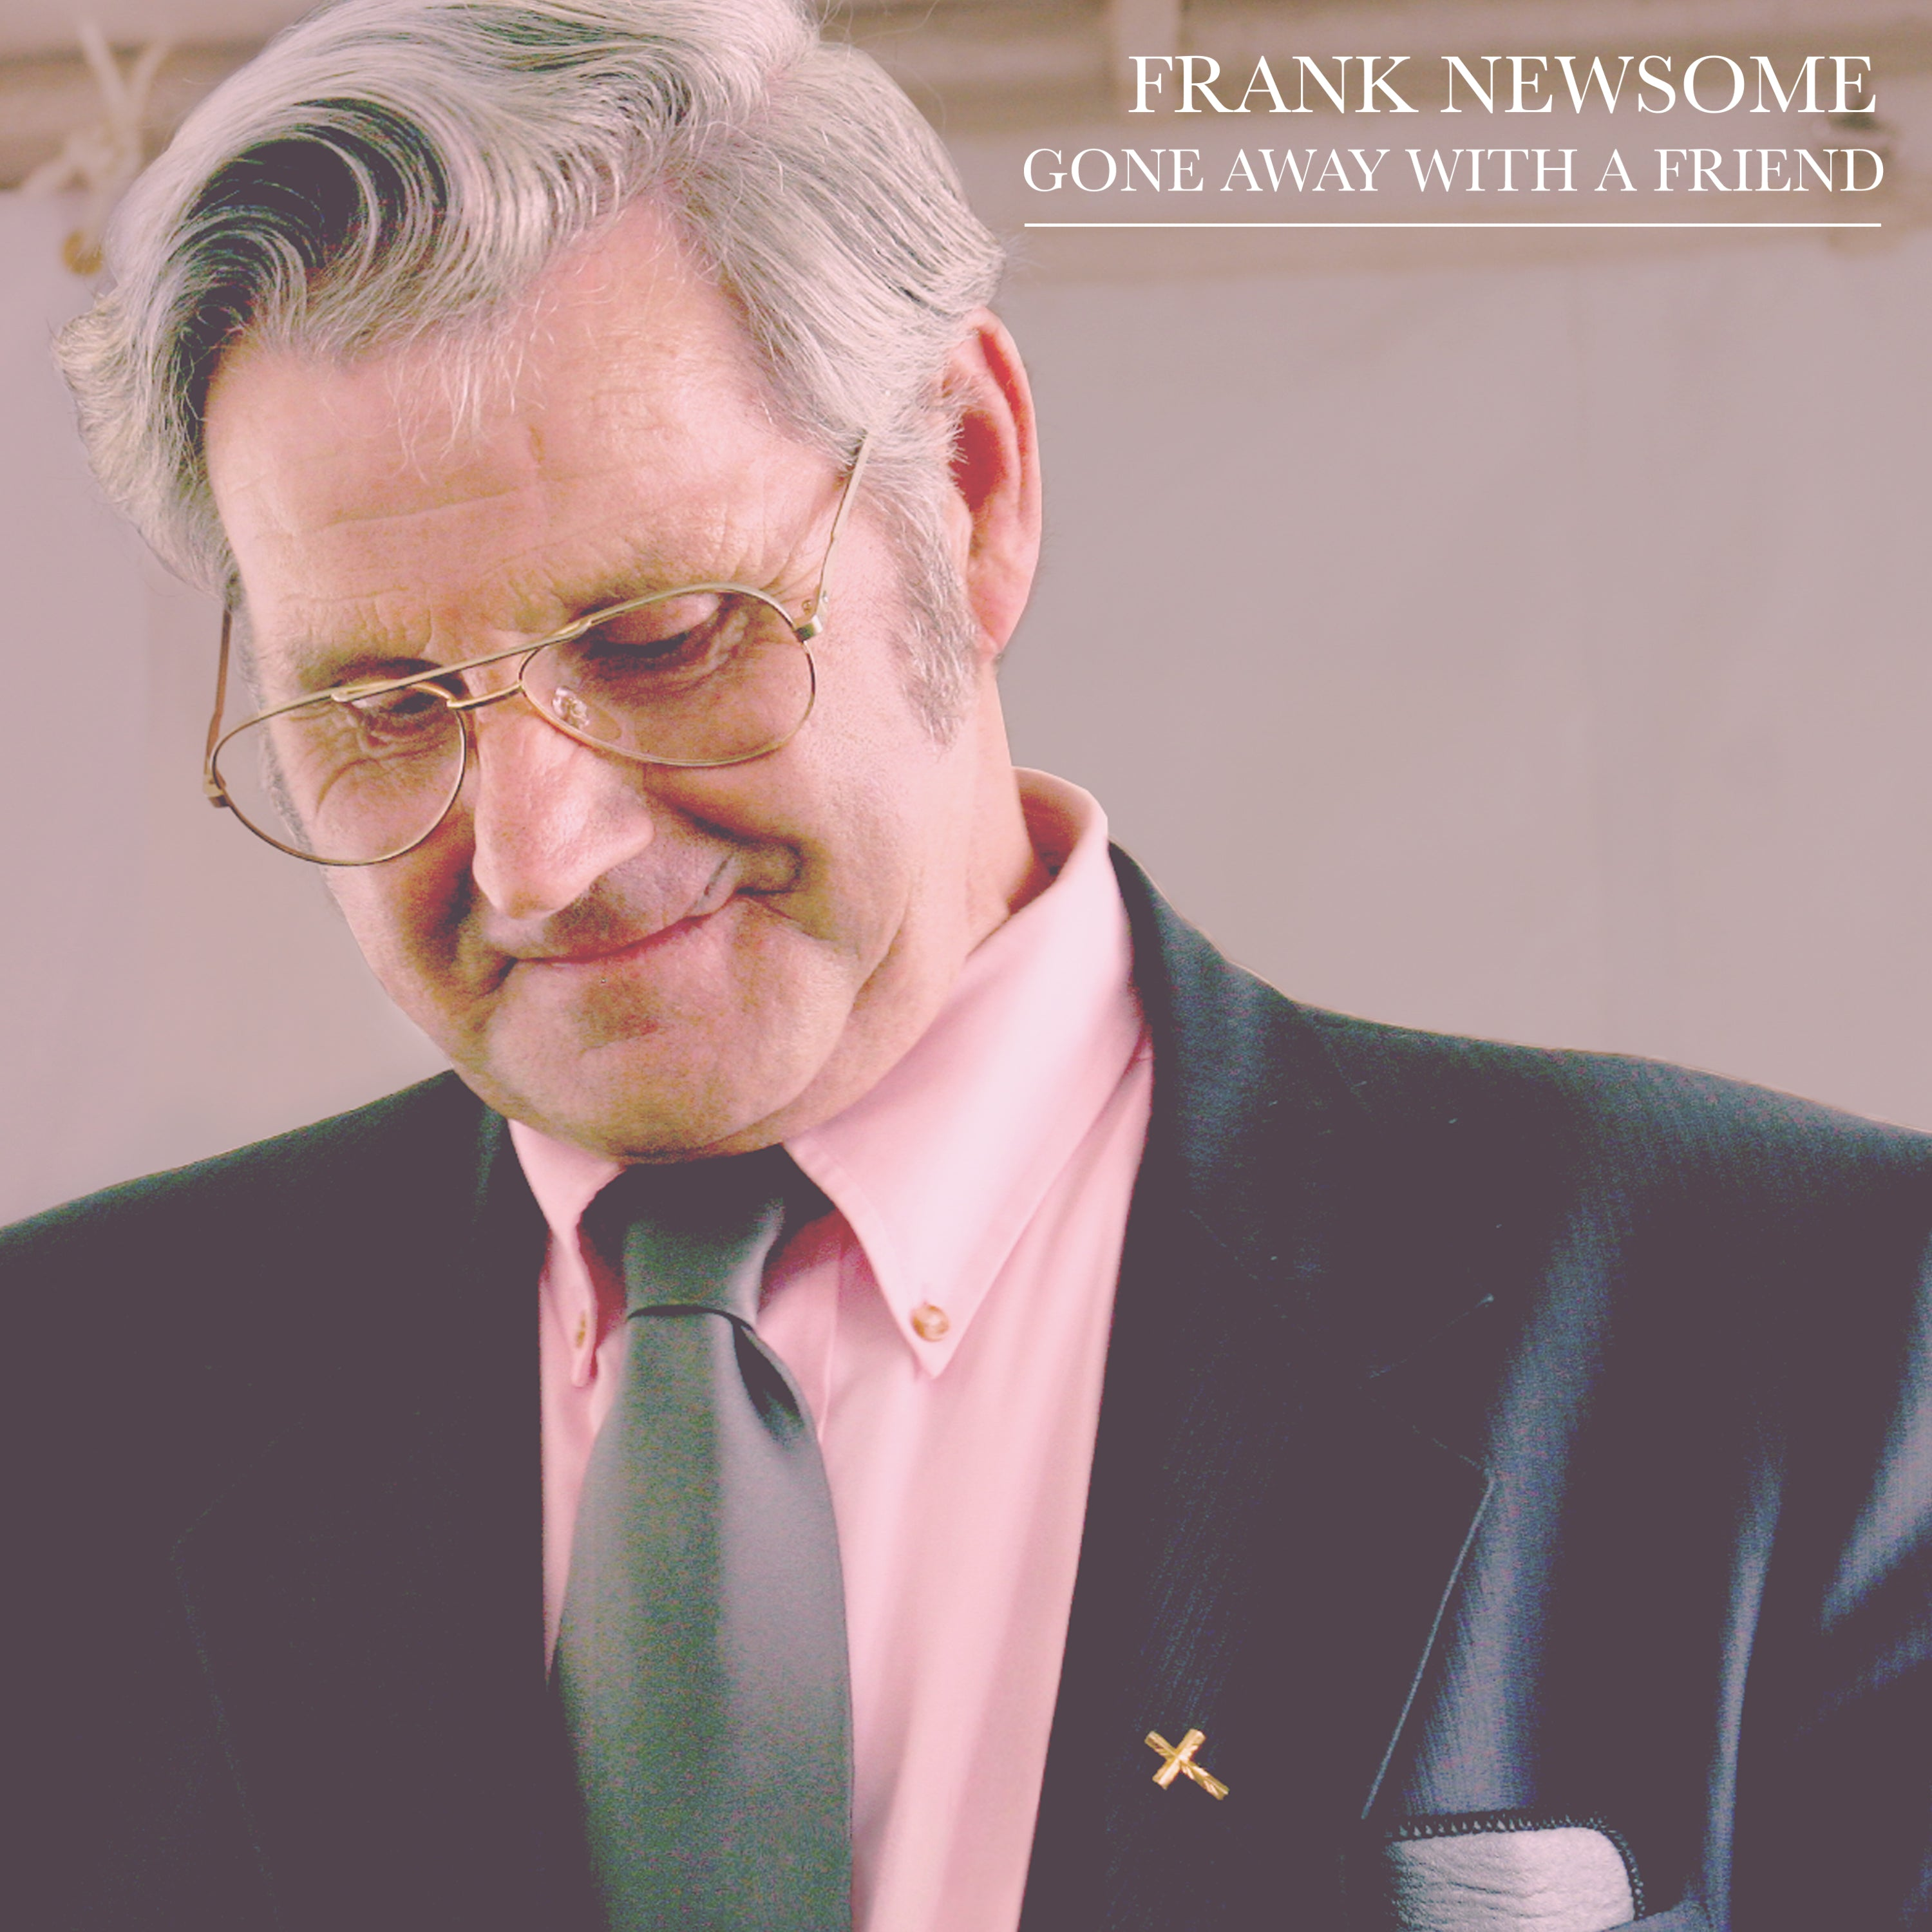 Album of Ancient Hymns Out Today From Master Hymn Singer Frank Newsome